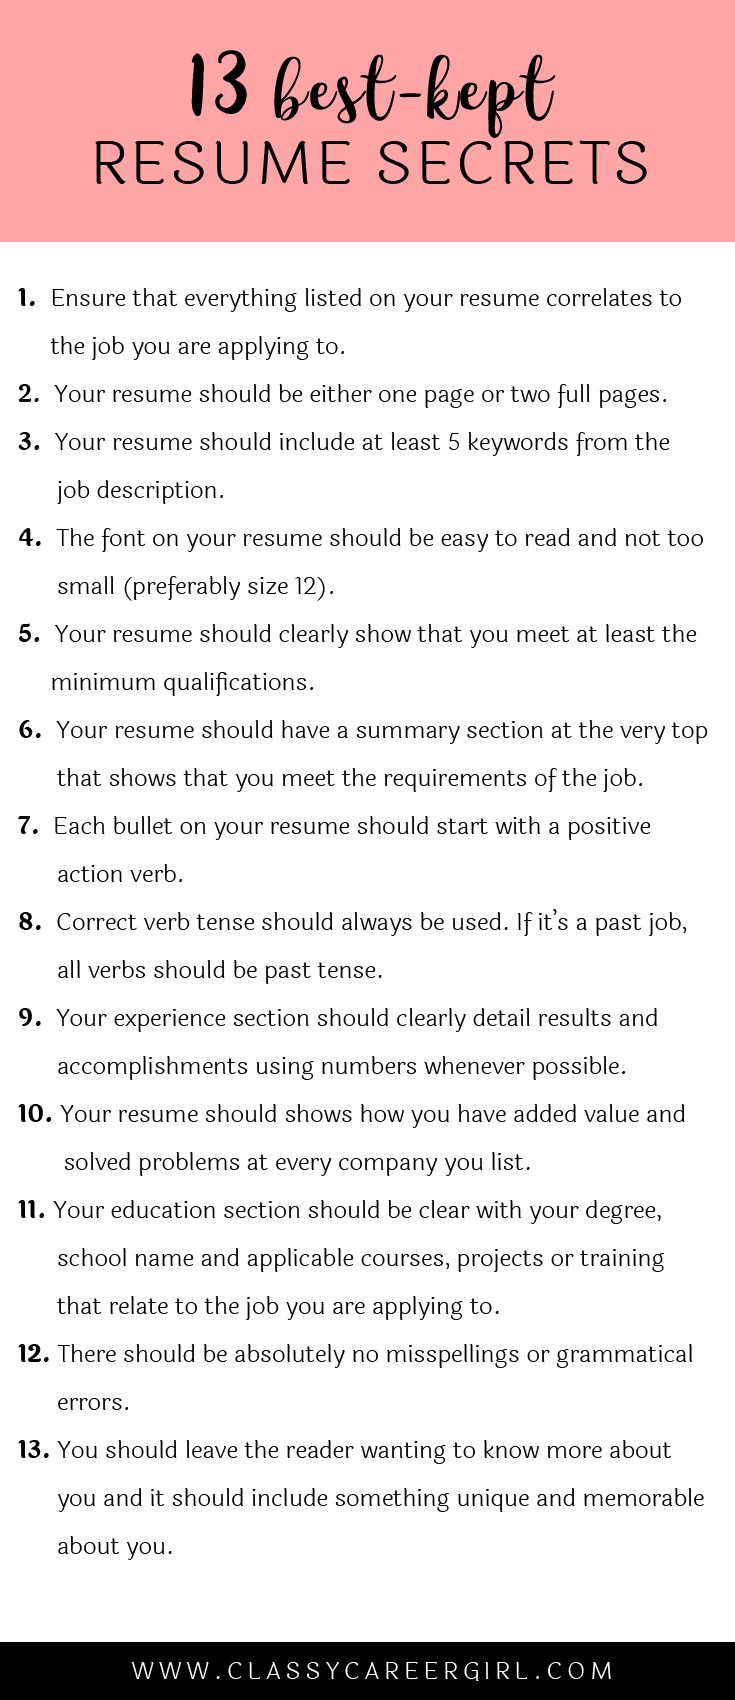 Opposenewapstandardsus  Seductive  Ideas About Resume On Pinterest  Cv Format Resume Cv And  With Glamorous Some Hiring Managers Will Toss Your Resume Out If You Dont Know These  With Enchanting Chief Of Staff Resume Also Professional Summary On A Resume In Addition Office Work Resume And How To Write Good Resume As Well As Putting Together A Resume Additionally Formal Resume Template From Pinterestcom With Opposenewapstandardsus  Glamorous  Ideas About Resume On Pinterest  Cv Format Resume Cv And  With Enchanting Some Hiring Managers Will Toss Your Resume Out If You Dont Know These  And Seductive Chief Of Staff Resume Also Professional Summary On A Resume In Addition Office Work Resume From Pinterestcom